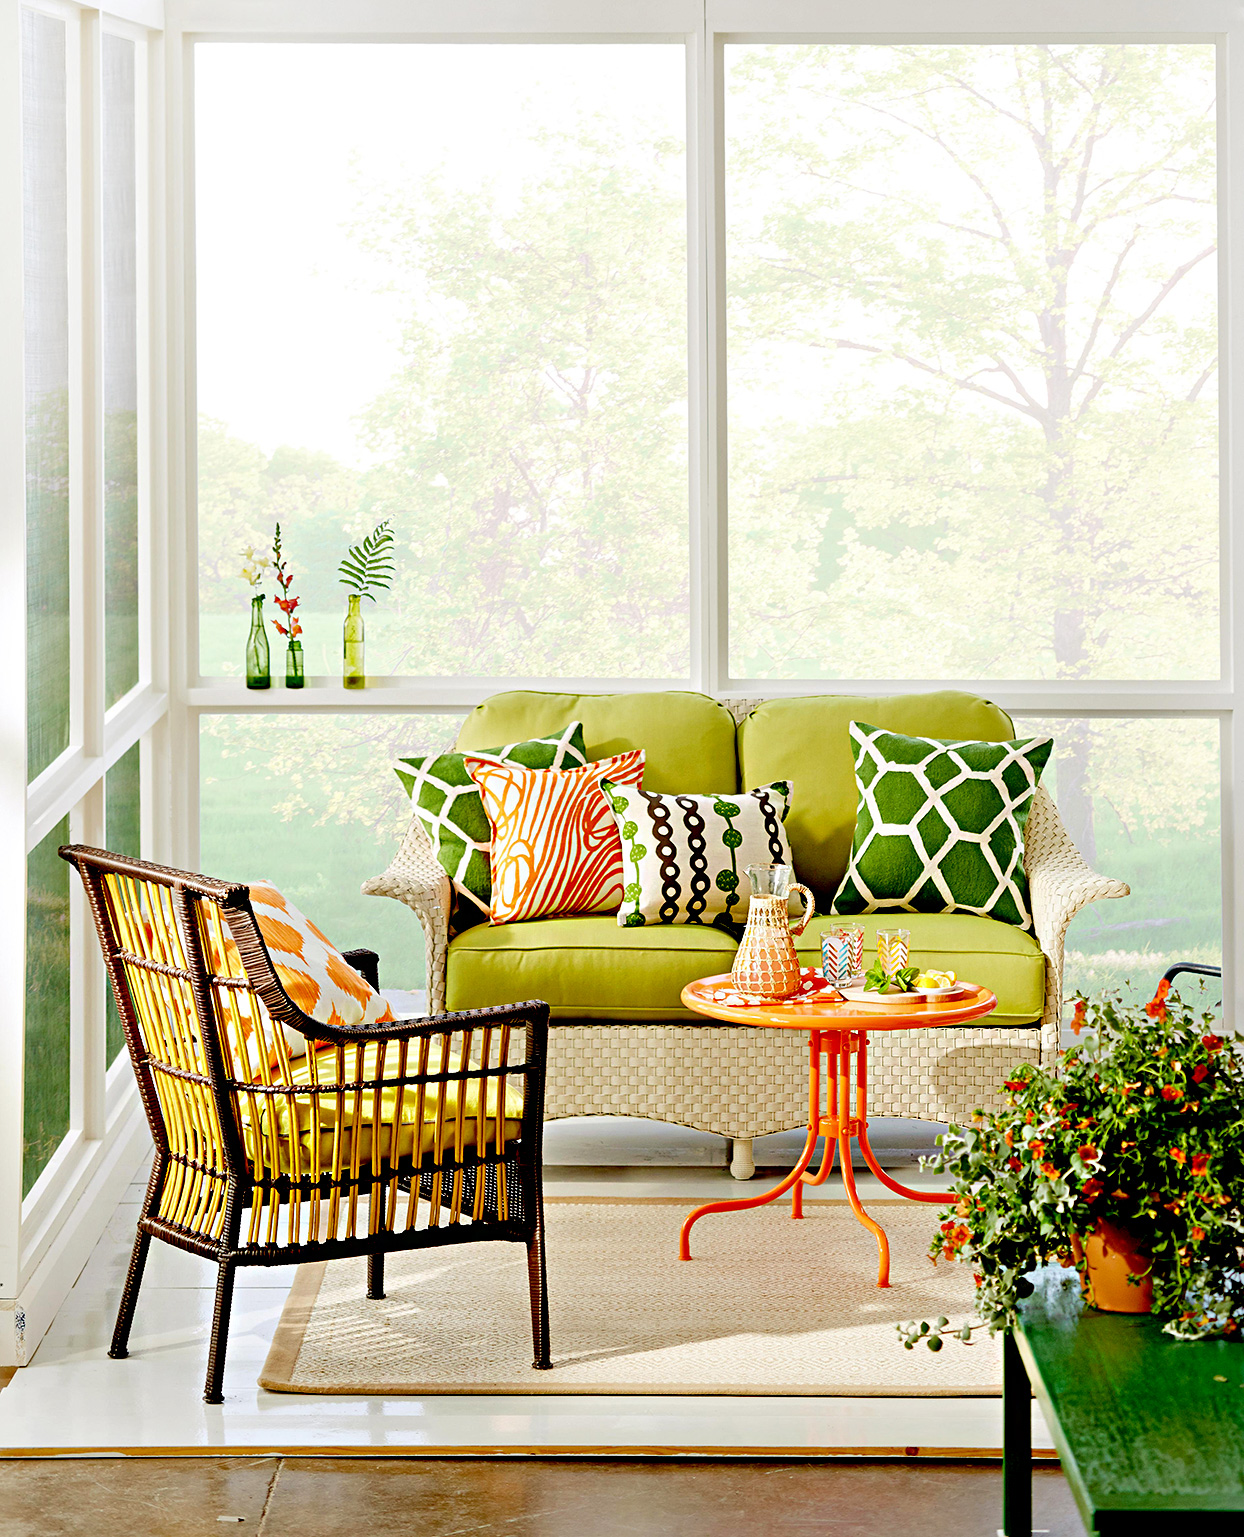 Porch windows, couch, chair, small table